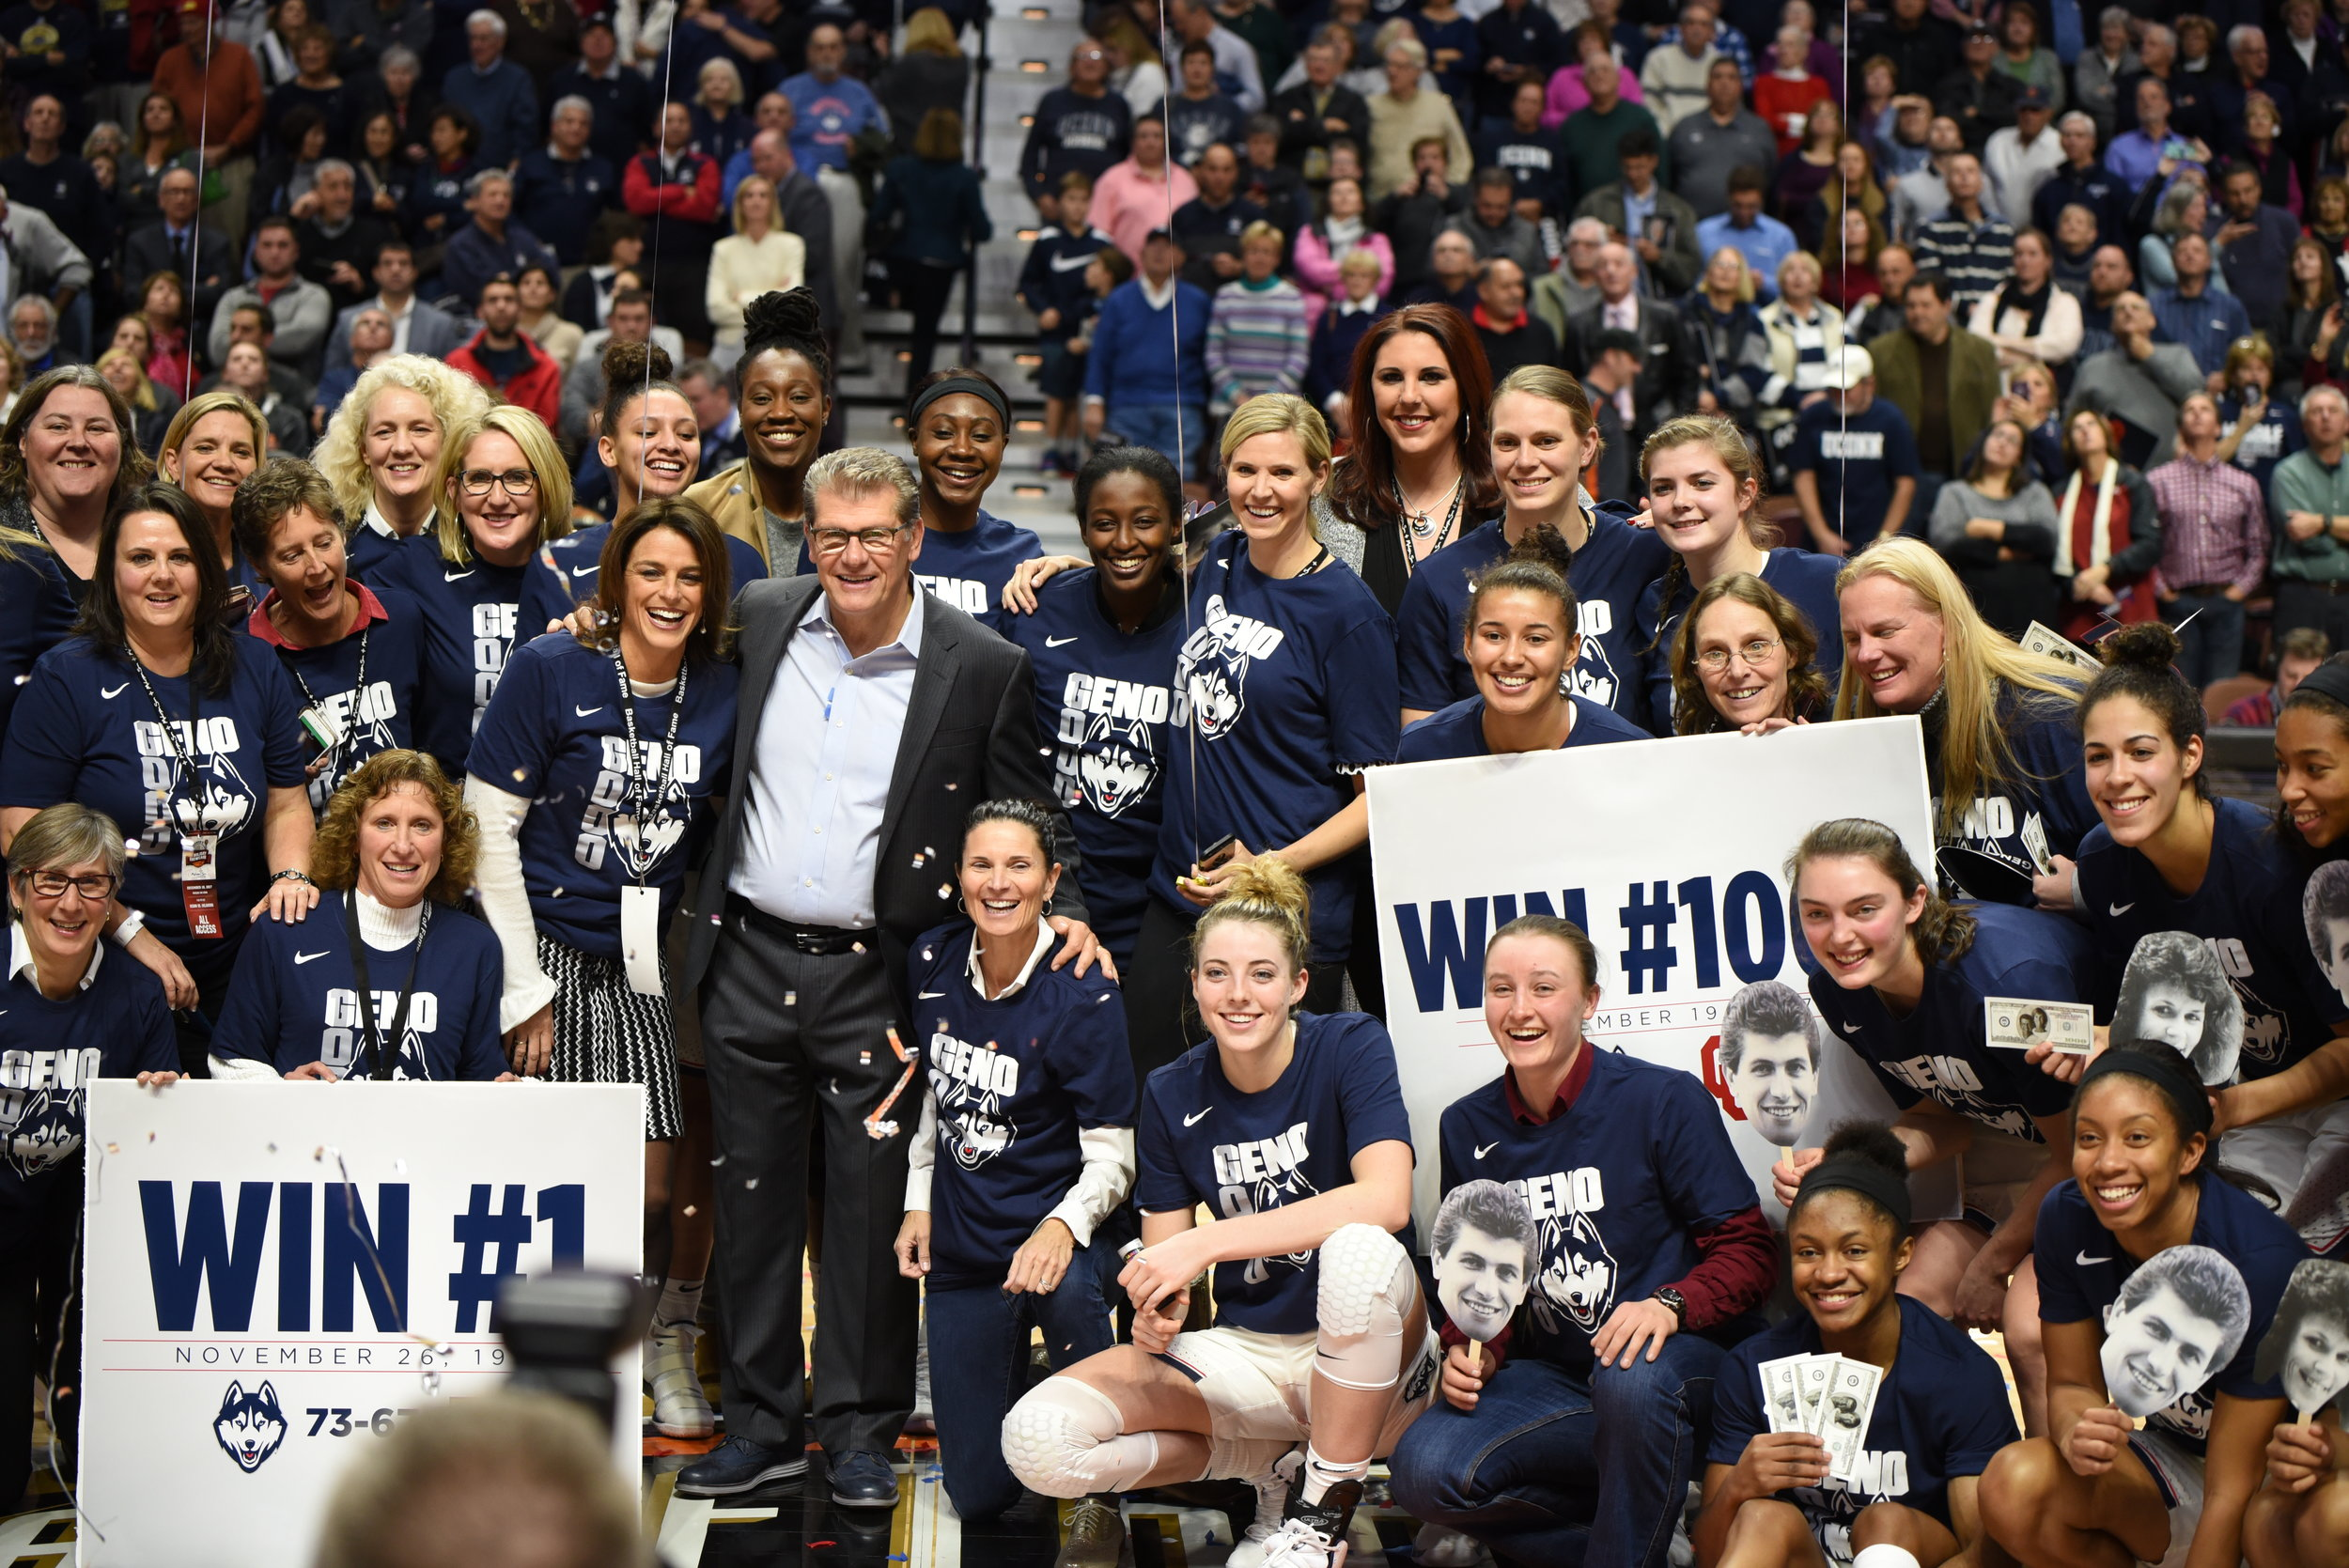 UConn head coach Geno Auriemma celebrates his 1000th career win with several of his former players, along with his current team. The Huskies' defeated the Oklahoma Sooners 88-64 Tuesday night at Mohegan Sun Arena in Uncasville, Connecticut. (Charlotte Lao, Associate Photo Editor/The Daily Campus)